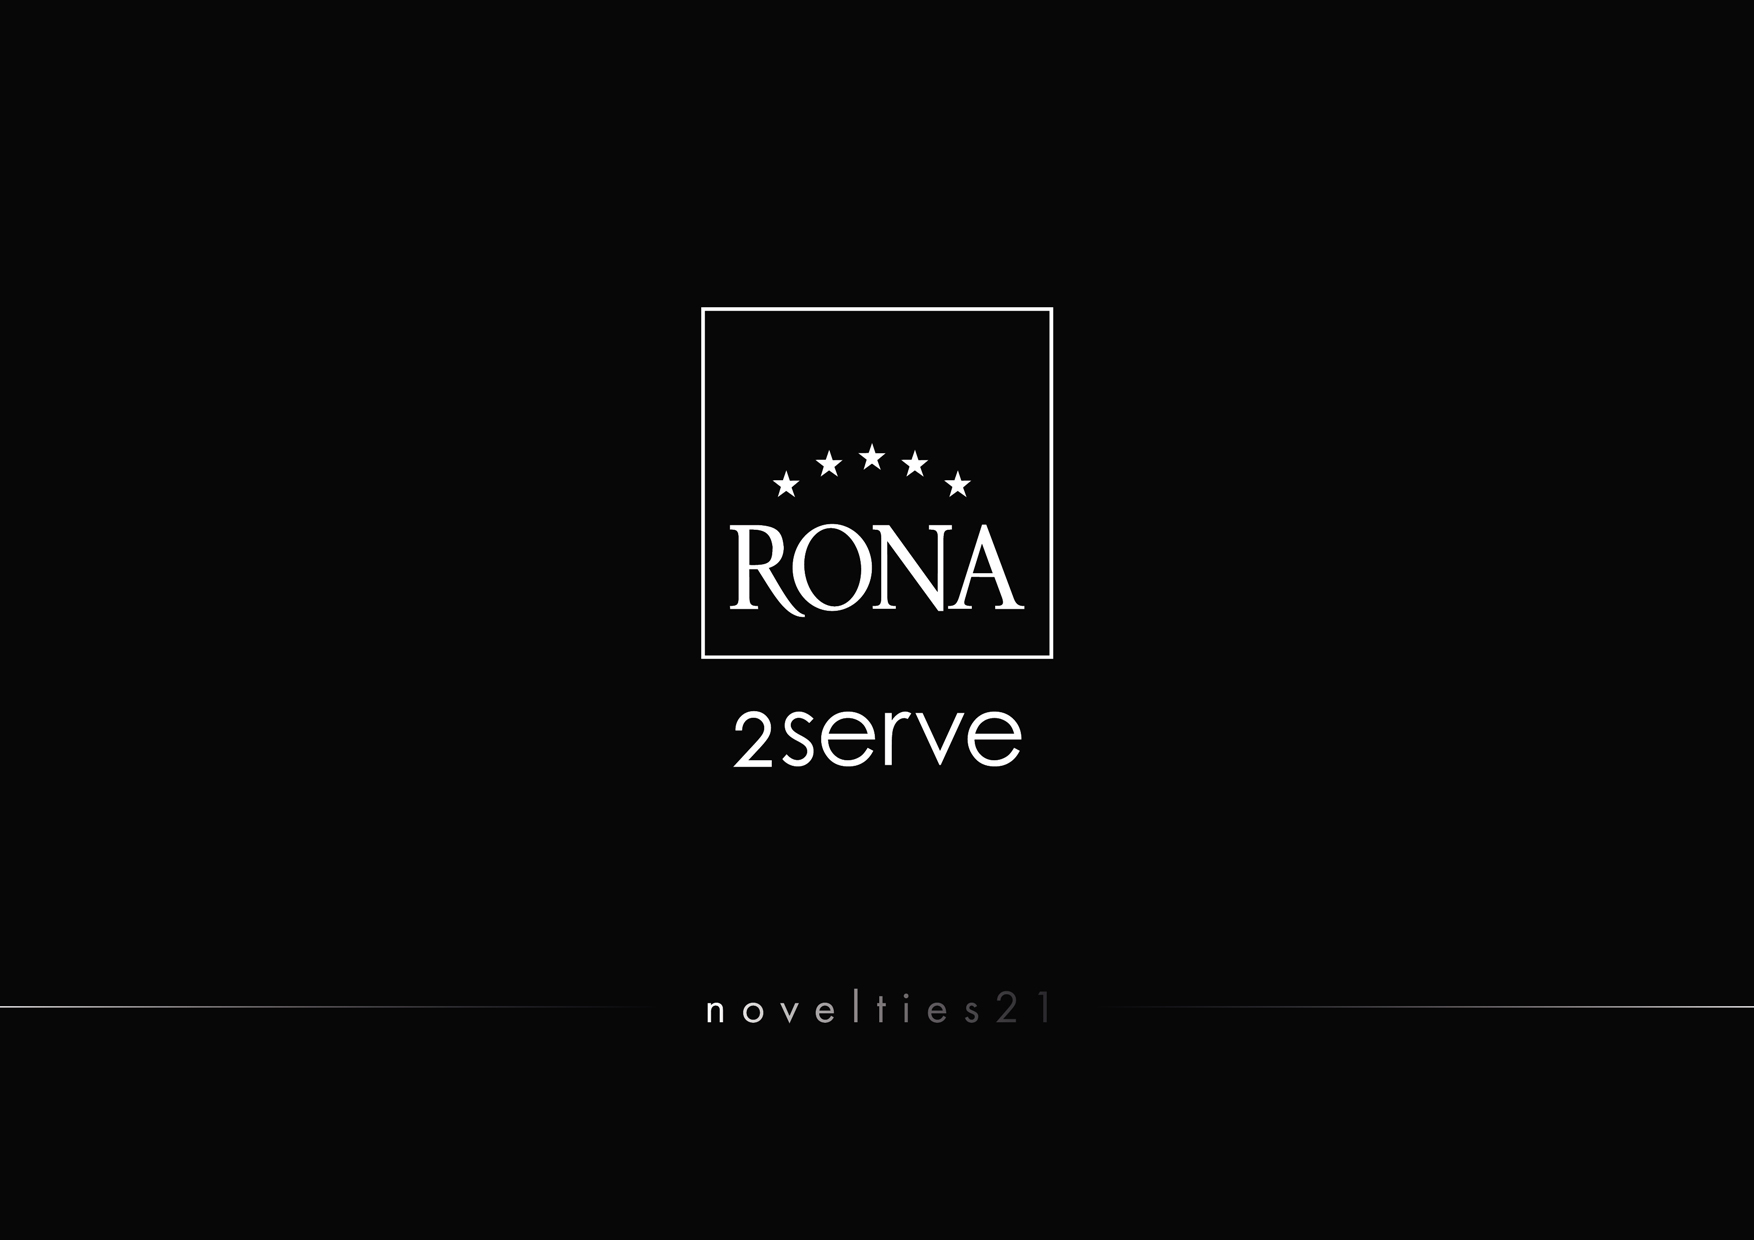 RONA 2SERVE Novelties 2021